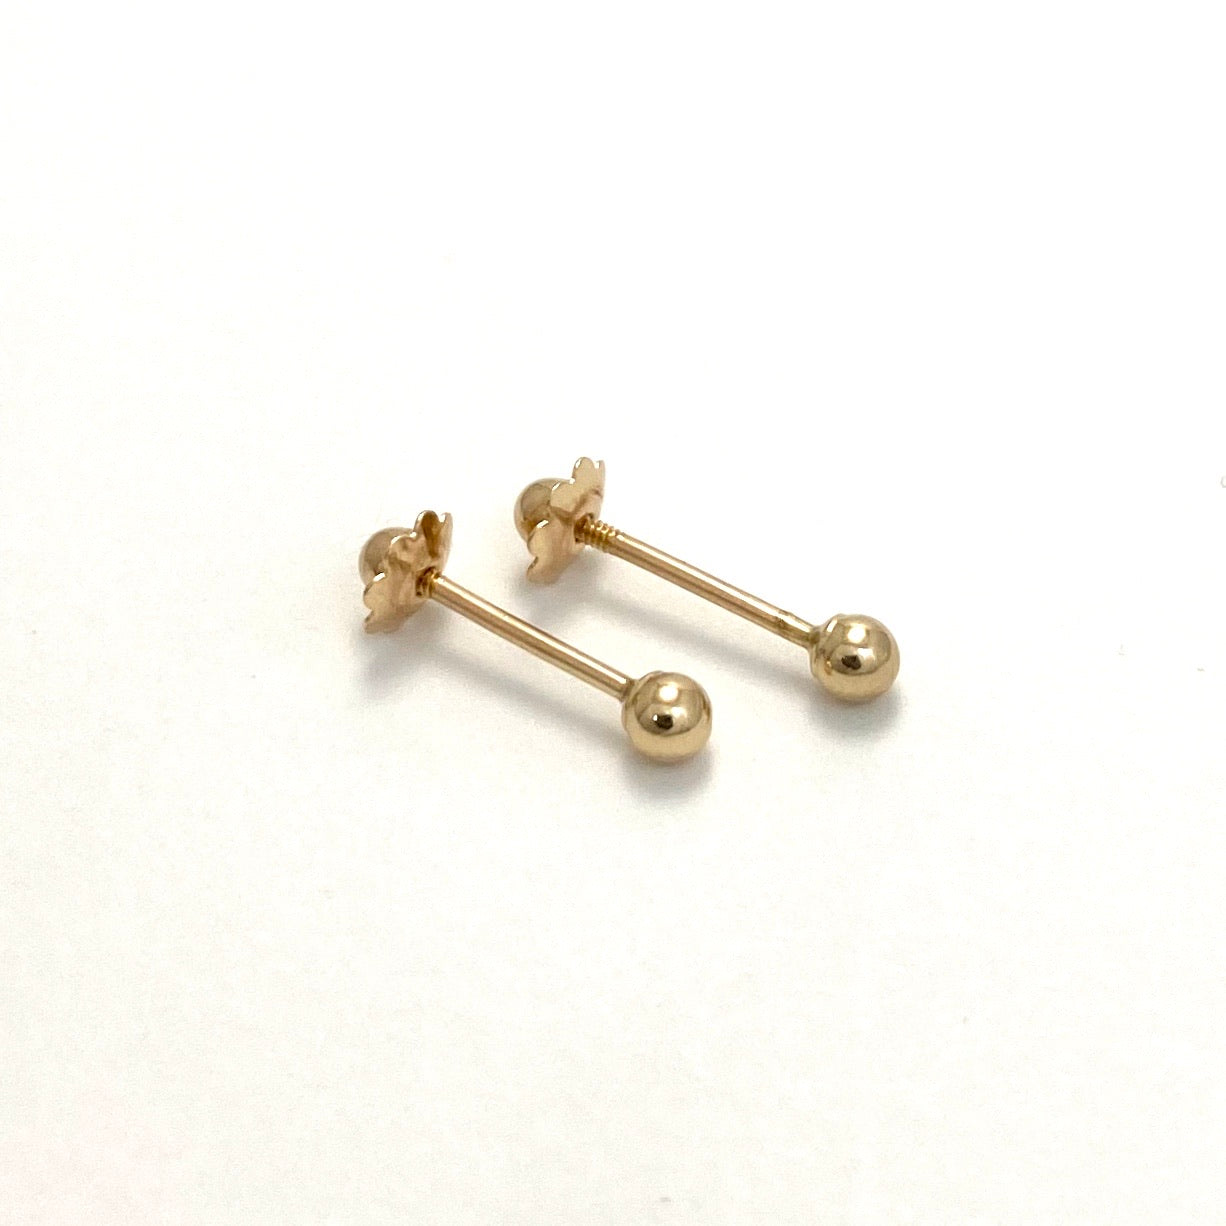 10K Yellow Gold Studded Ball Earrings, 3mm, 4mm, 5mm, 6mm and 7mm